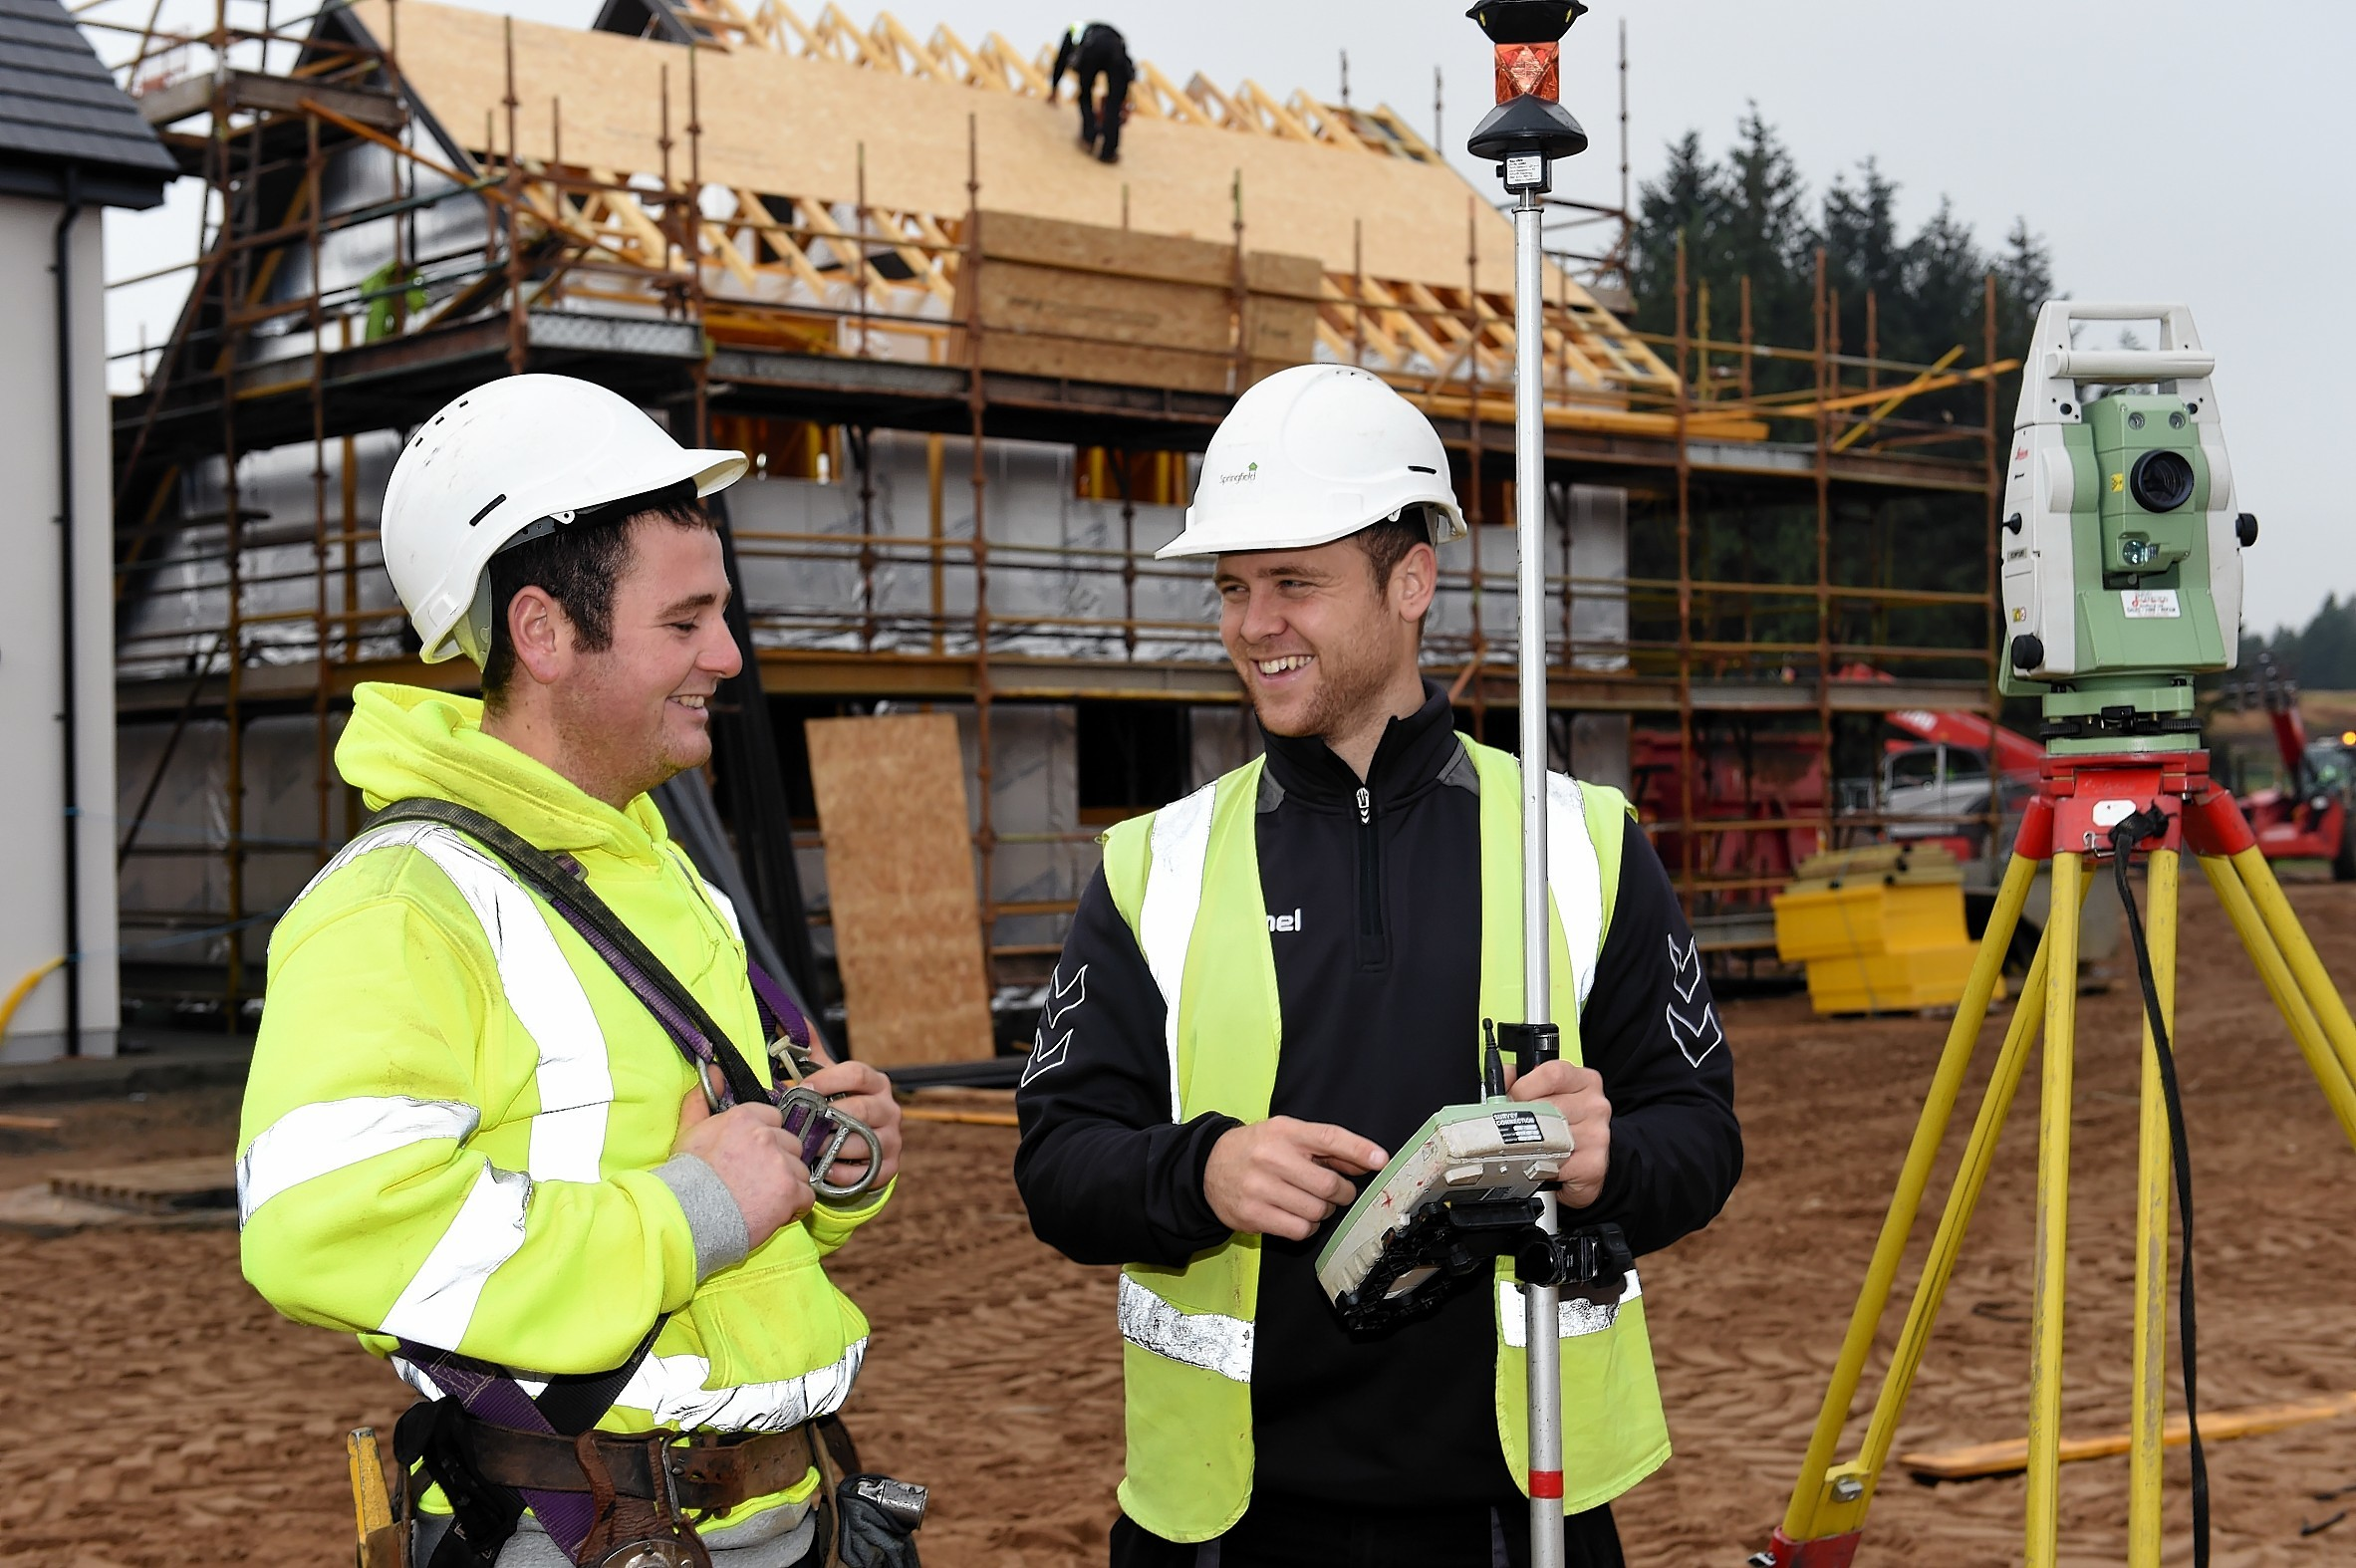 Springfield apprentice scaffolder, Conn Hysert, left, with civil engineer apprentice, Simon Allan, right,  on site at Duncansfield Estate, Elgin.